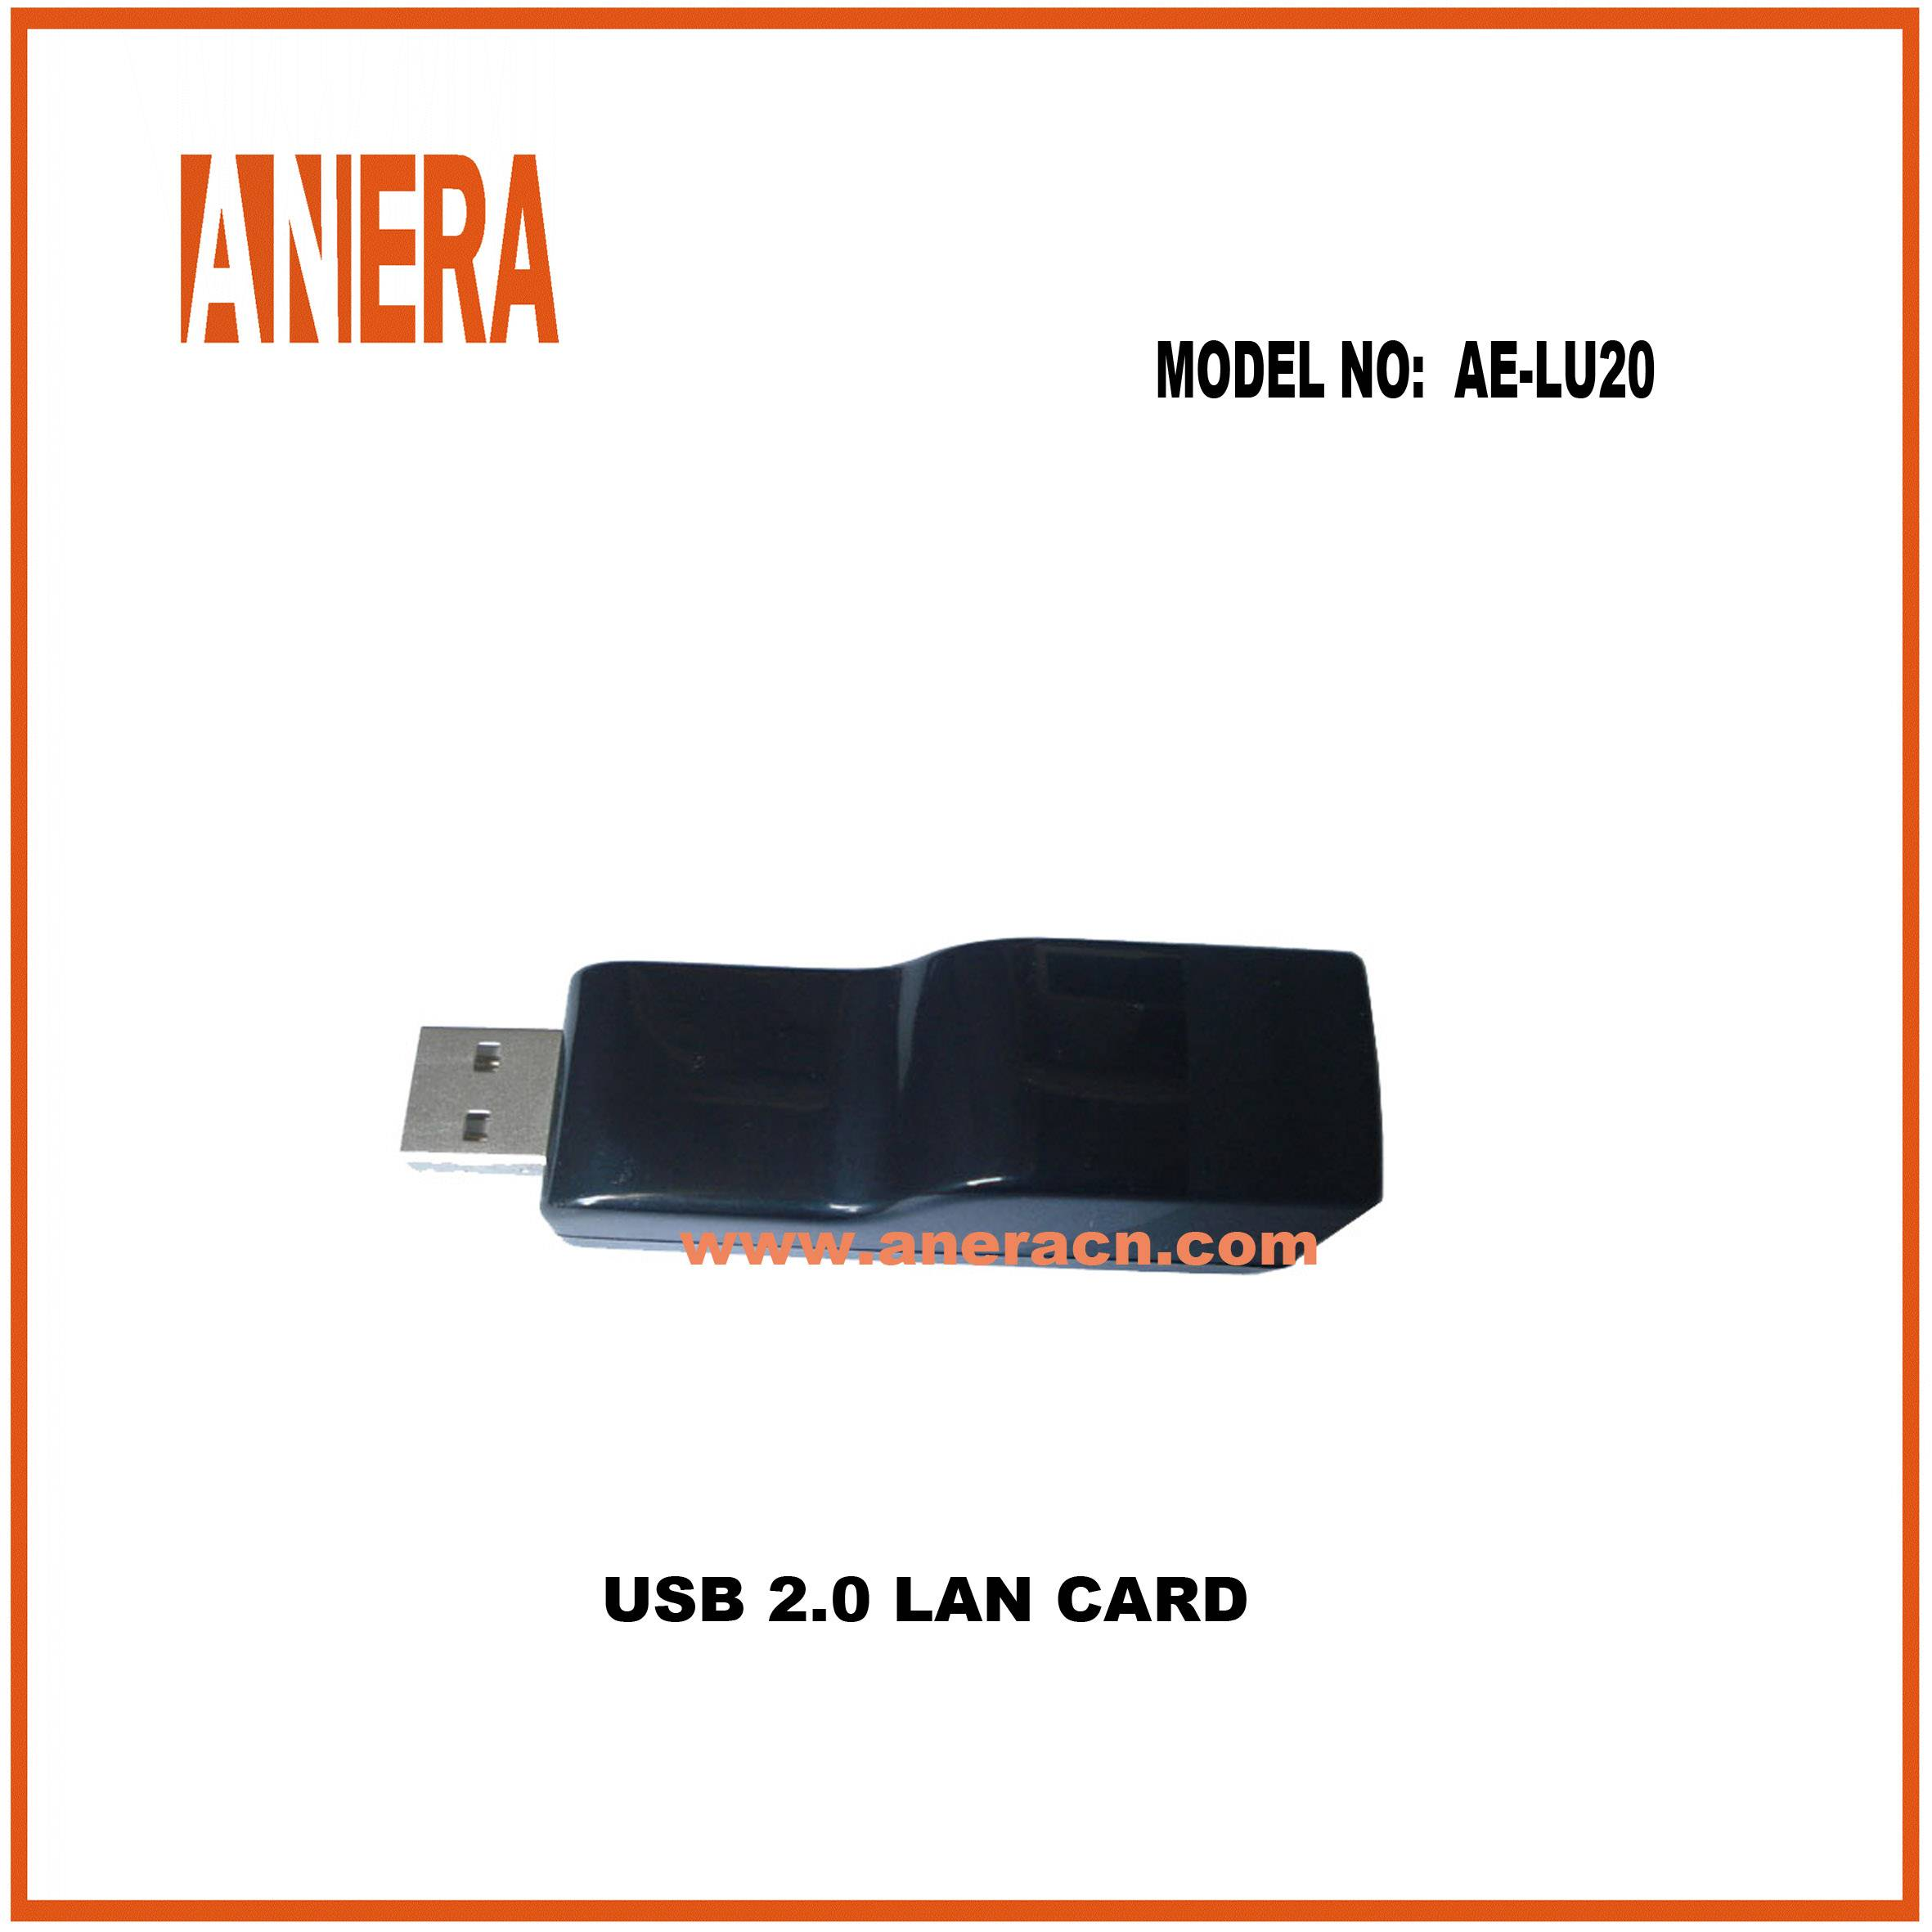 USB 2.0 LAN CARD